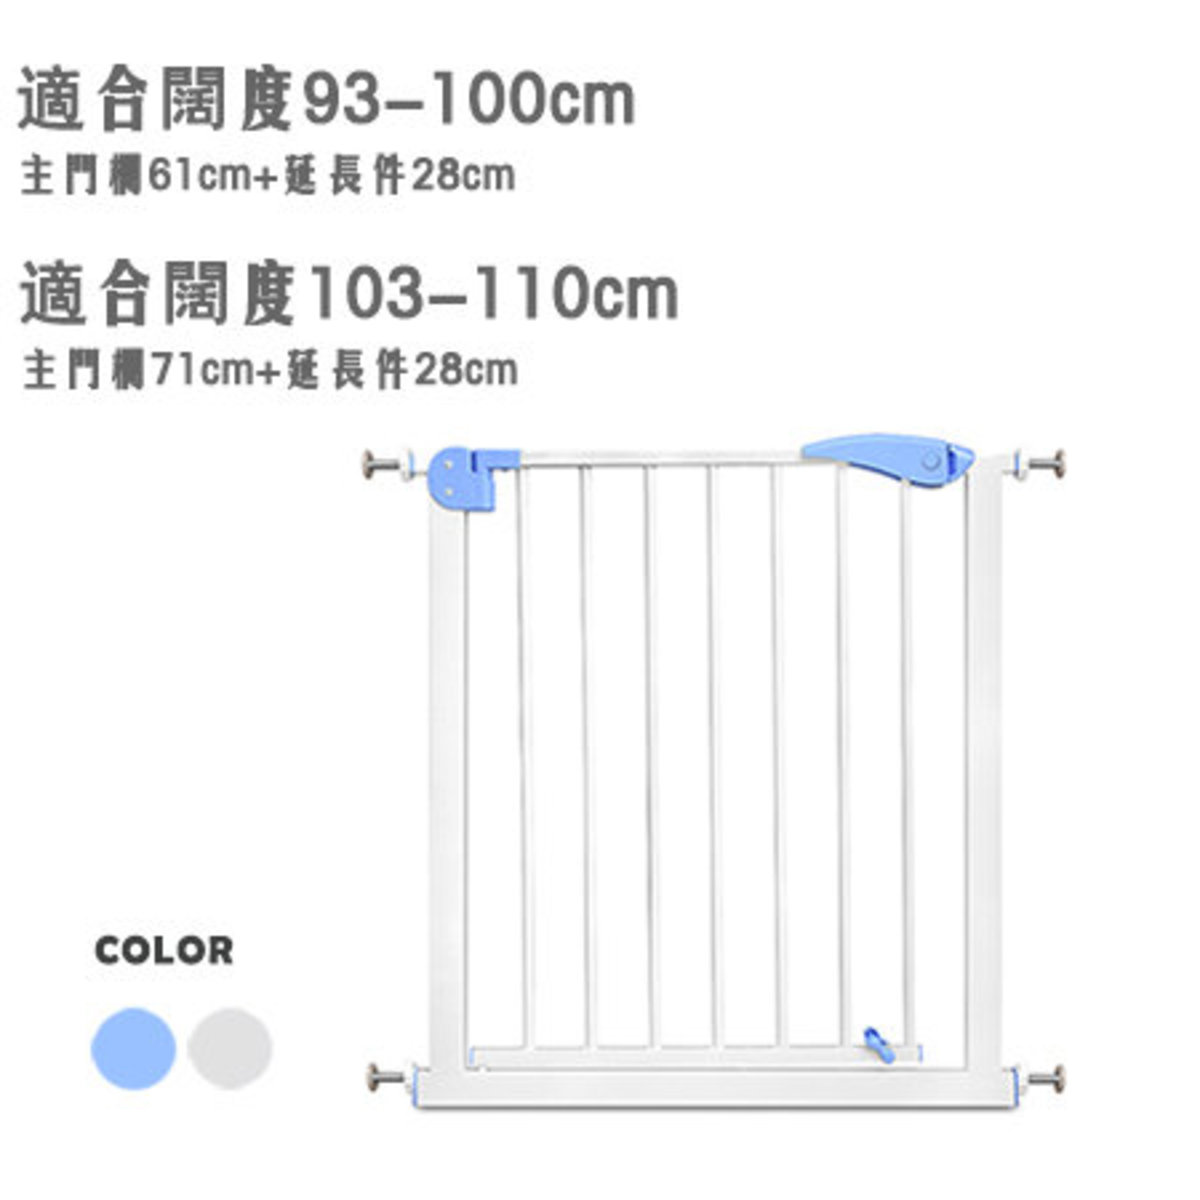 Baby Safety Gate with Extension Parts 61+28cm (Grey) RG861-02-28